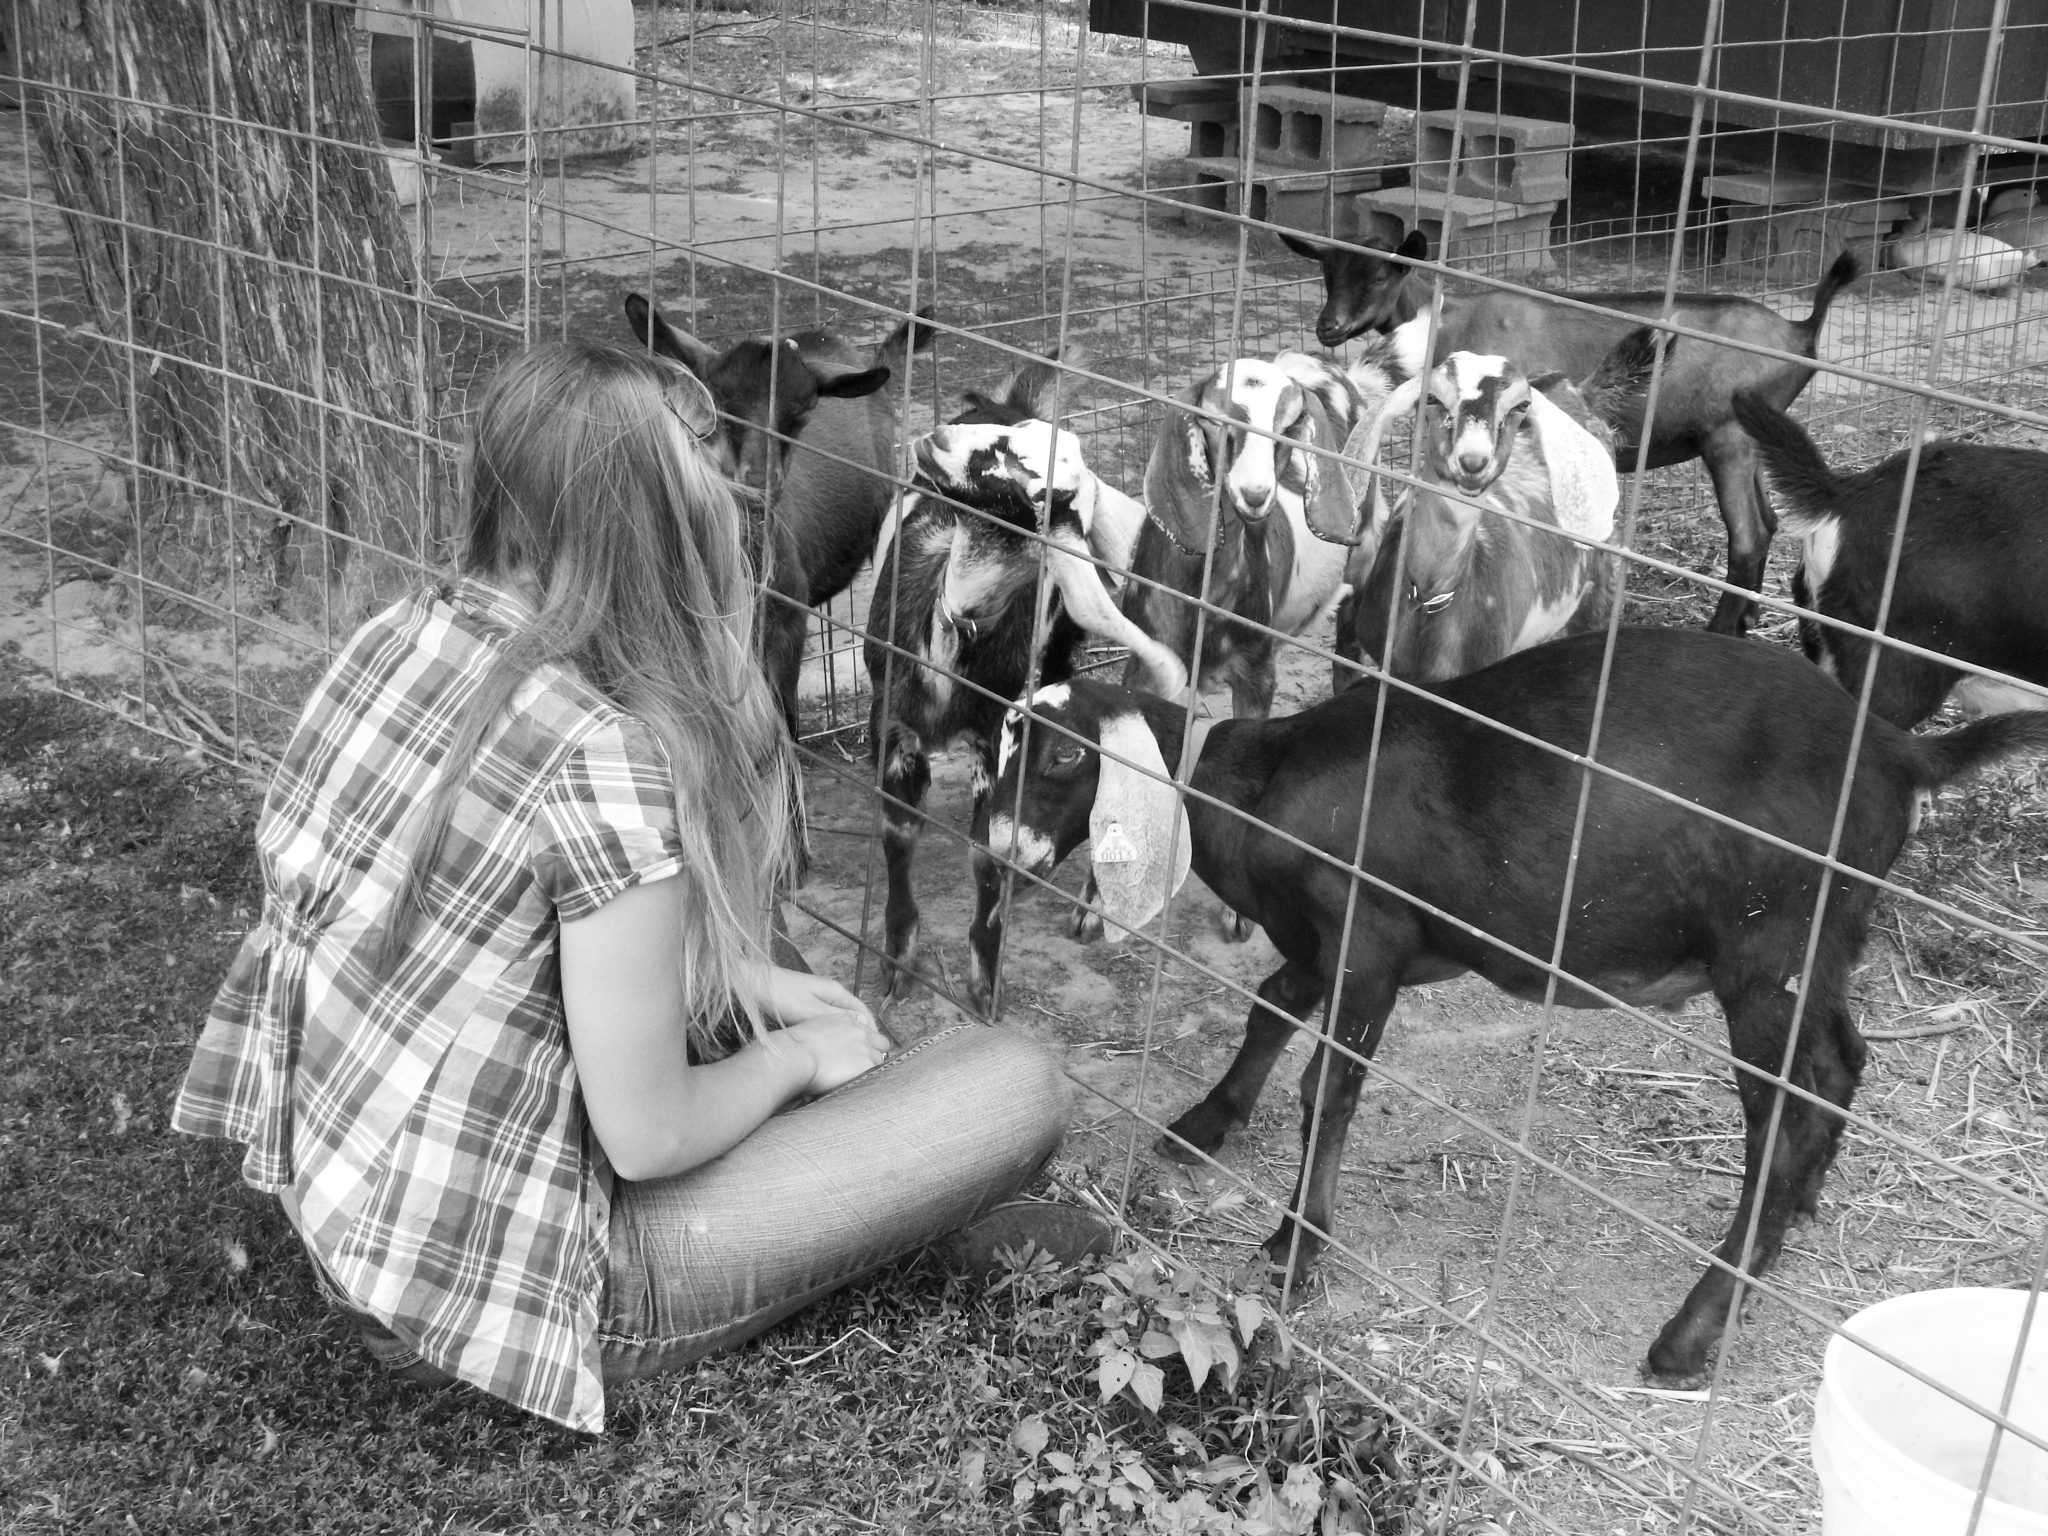 Girl with the Goats by Melanie